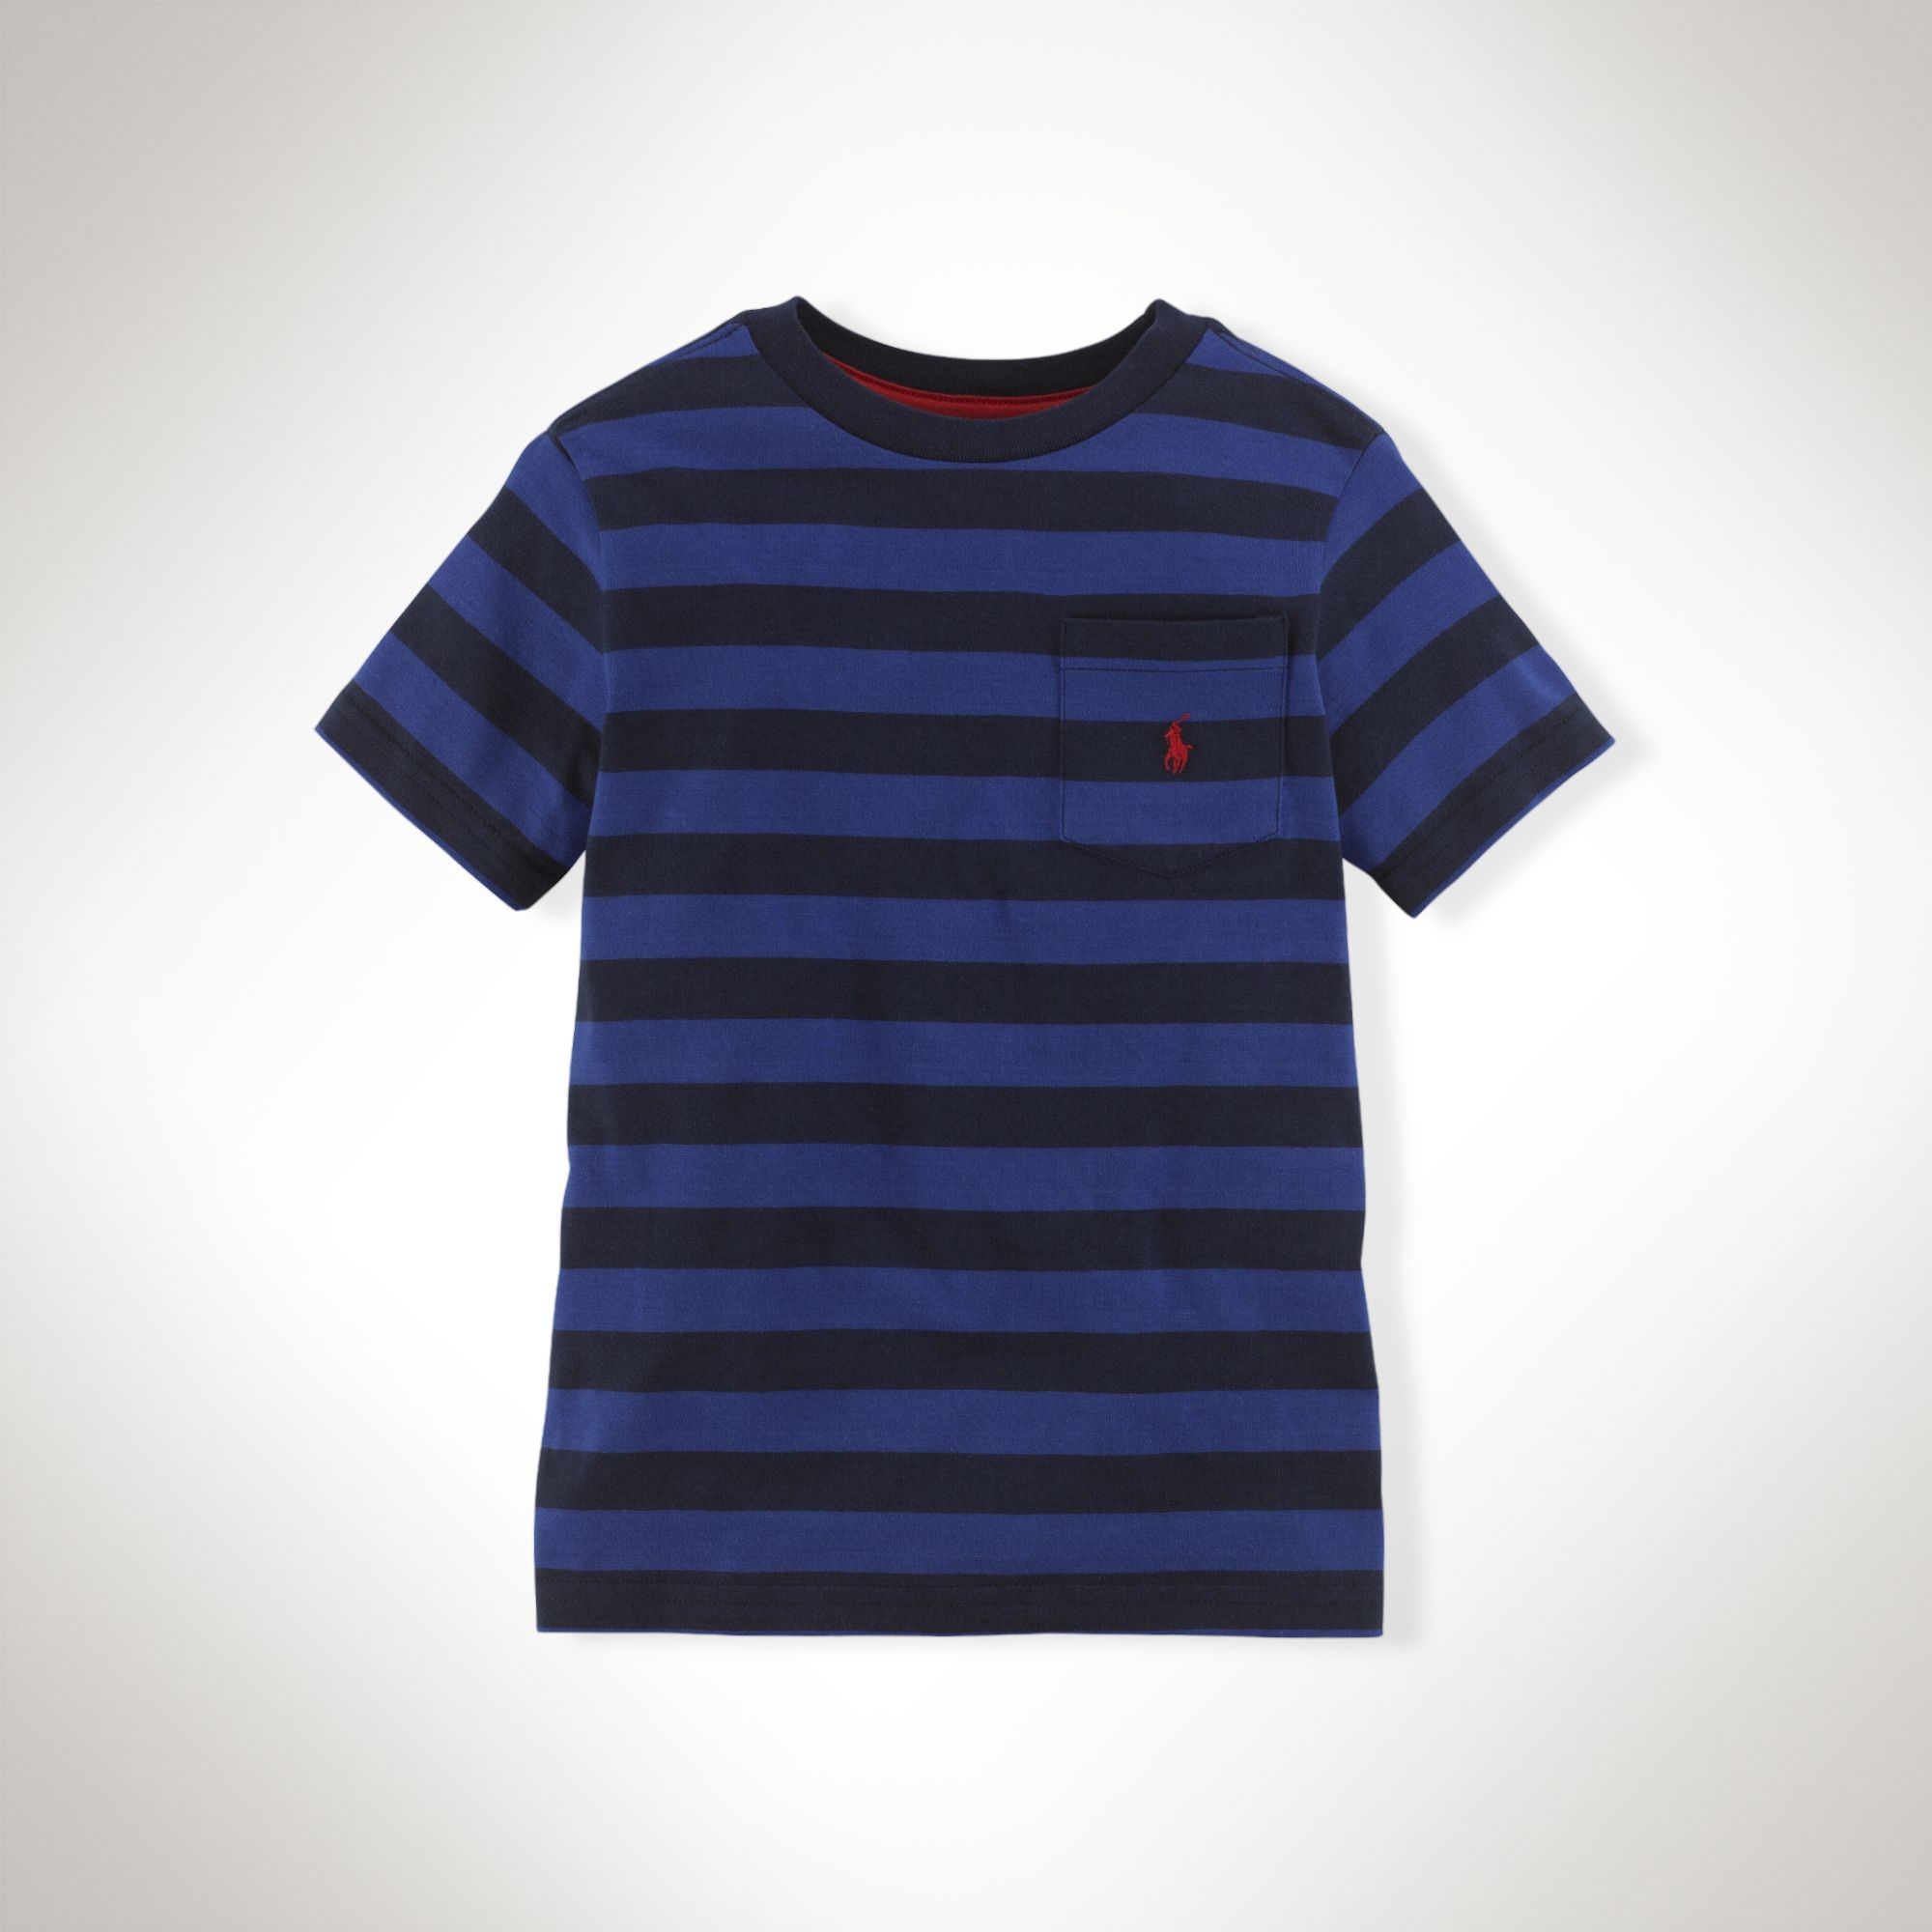 Product Code: RLXX-00060 Item Description:Navy Striped Tee軍藍色間條汗衫 Size:2/2T(Ages1.5-2, 88-93cm) Price:HK$199 Whatsapp :(+852) 6924-3068 http://www.facebook.com/BeesyTots